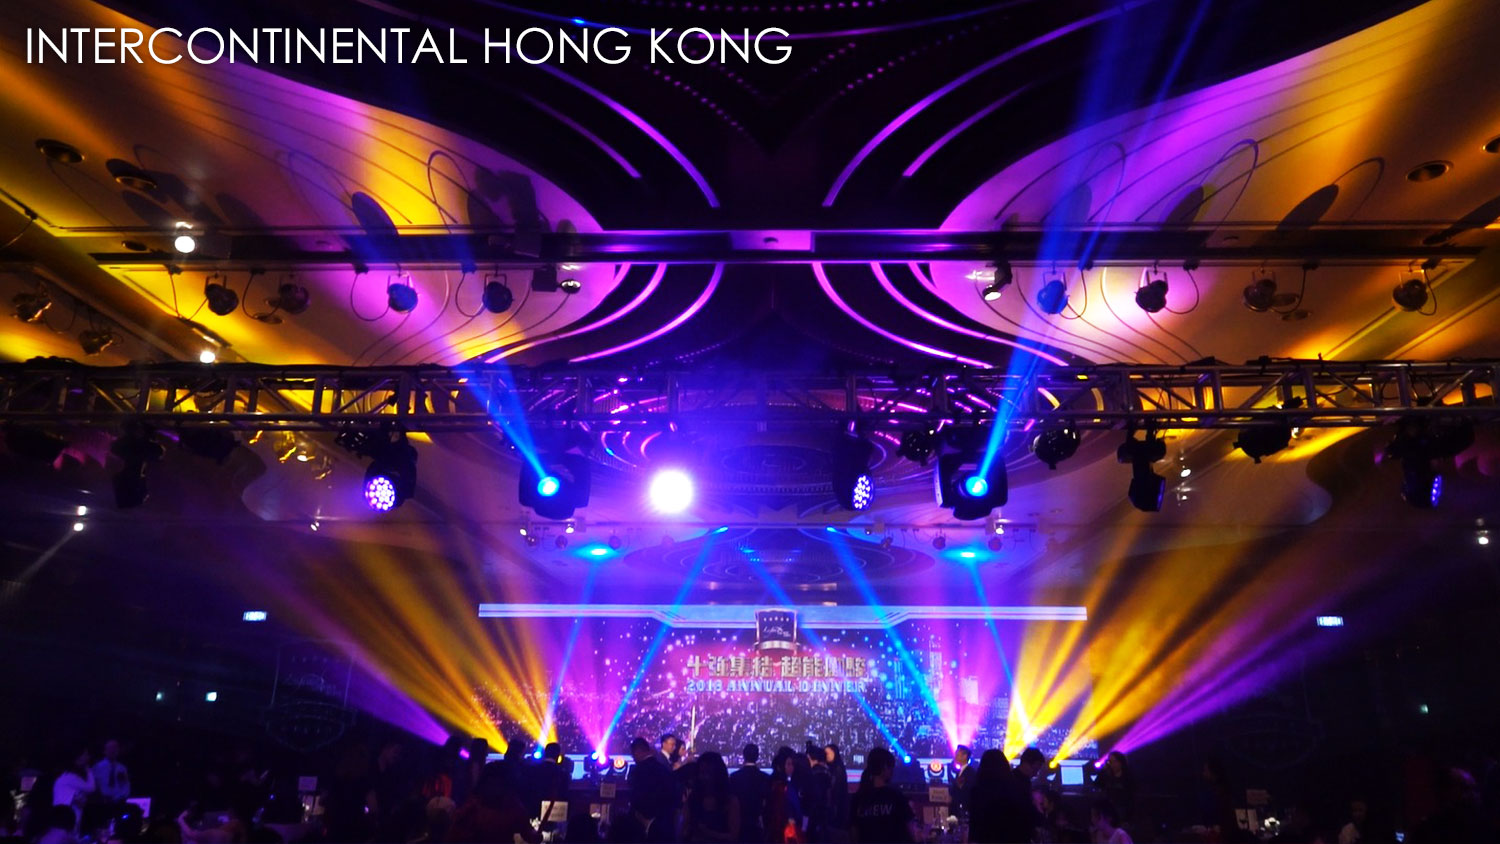 We are an event lighting rental company providing event lighting rental services in Hong Kong. Our lighting equipment greatly enhances the atmosphere at any function and is used for all types of events including gala dinners, conferences, wedding banquets, private parties, product launches, and outdoor festivals.